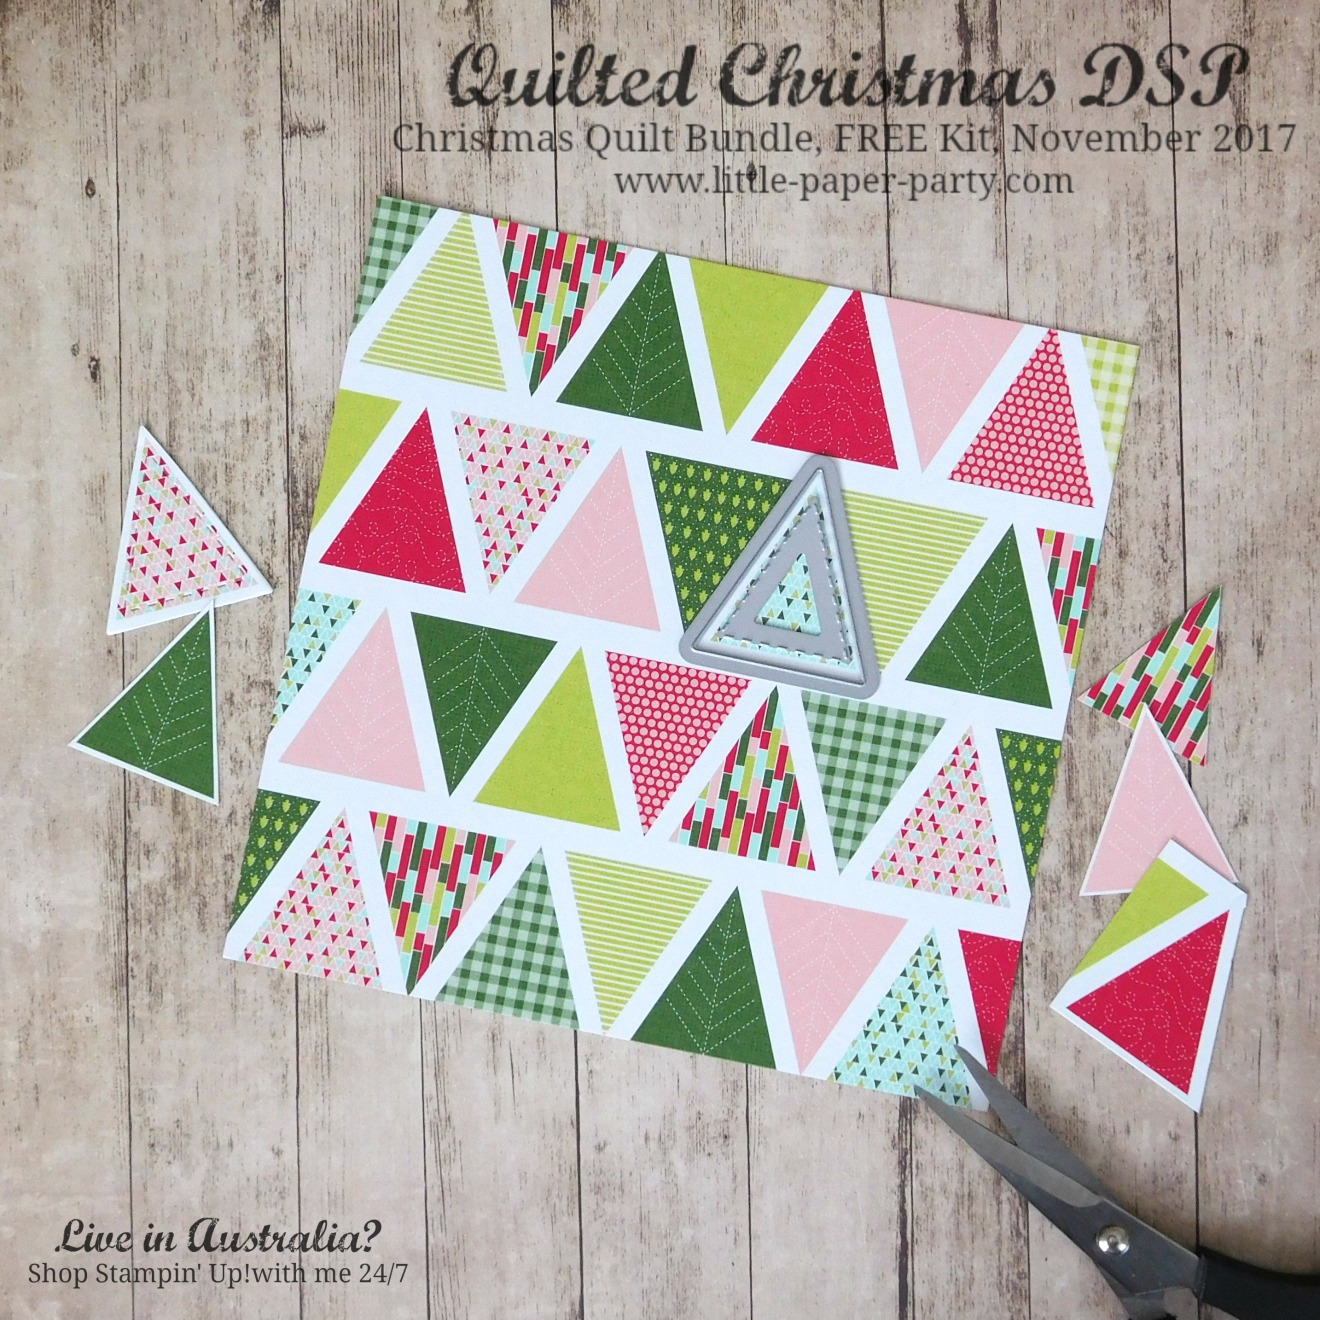 Little Paper Party, Quilted Christmas DSP, Christmas Quilt Bundle, FREE Kit November 2017, #5.jpg